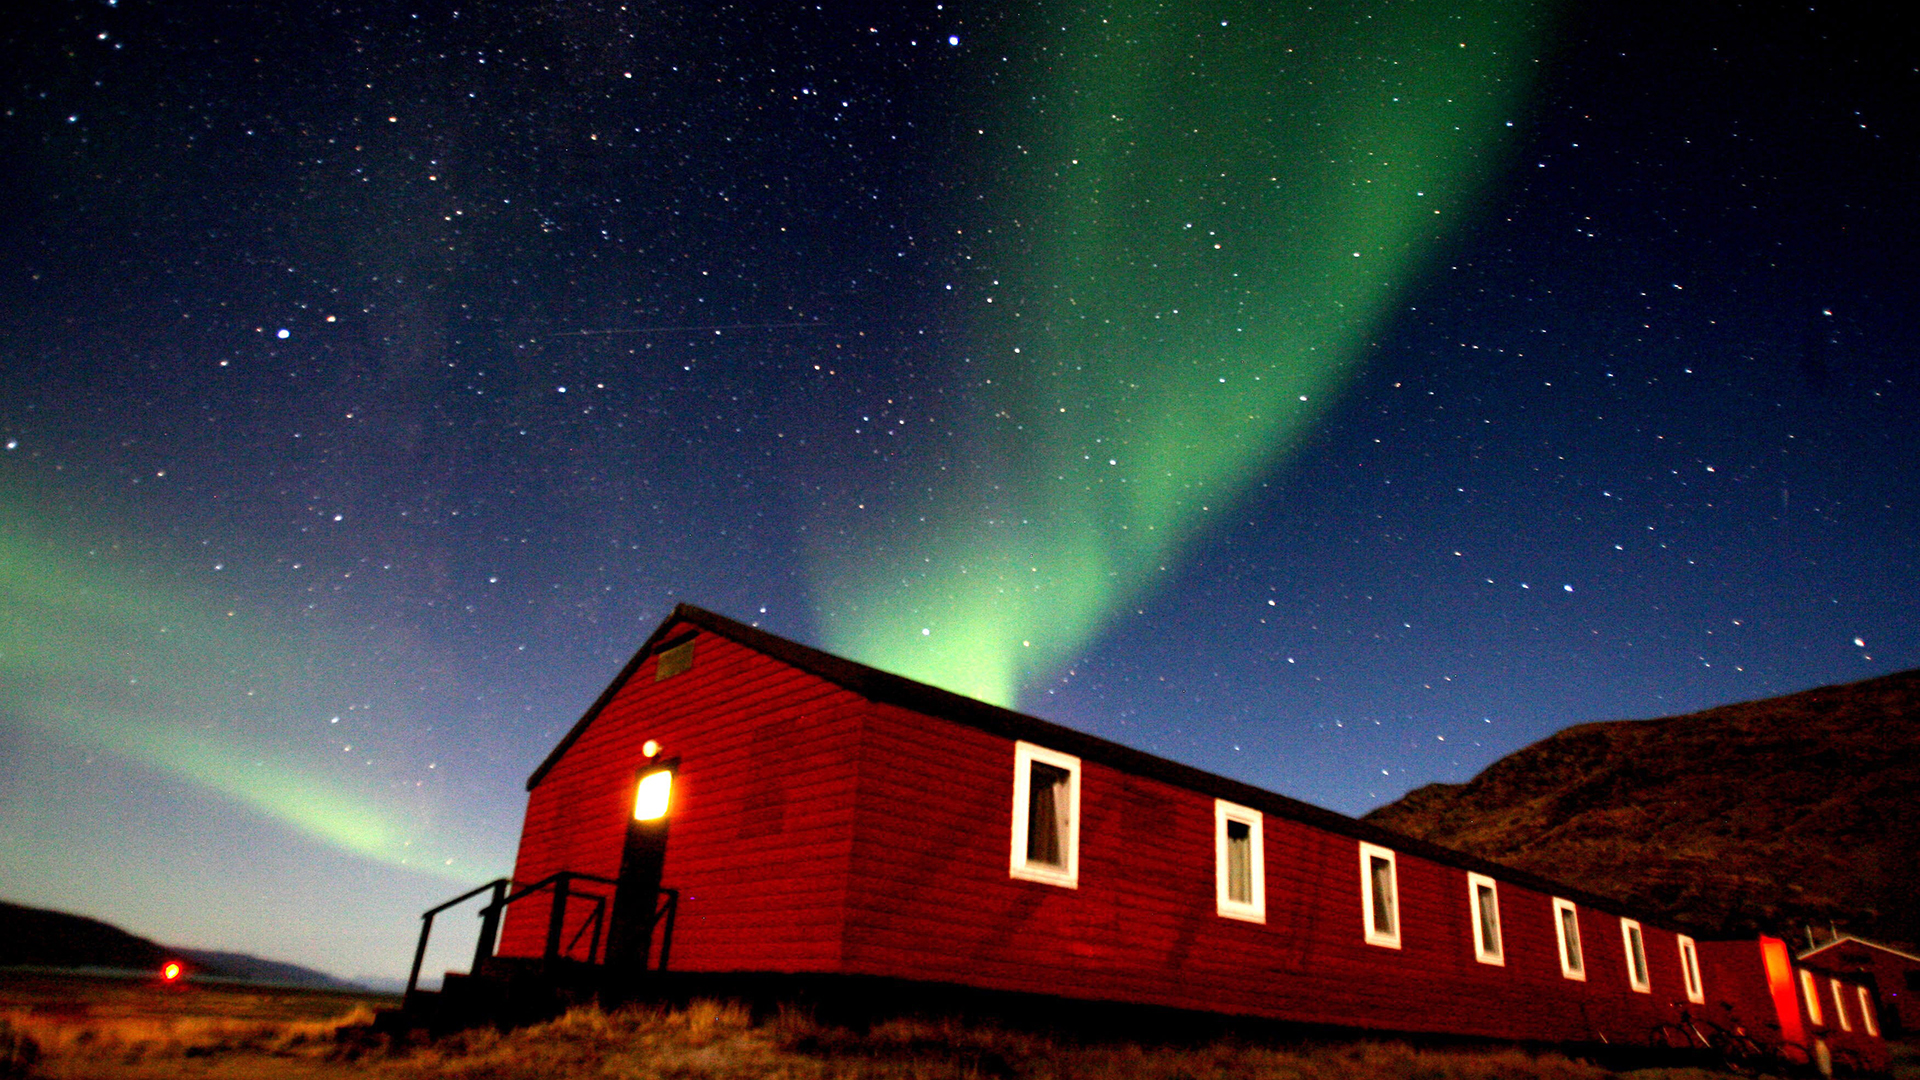 The northern lights may be visible from the US tonight